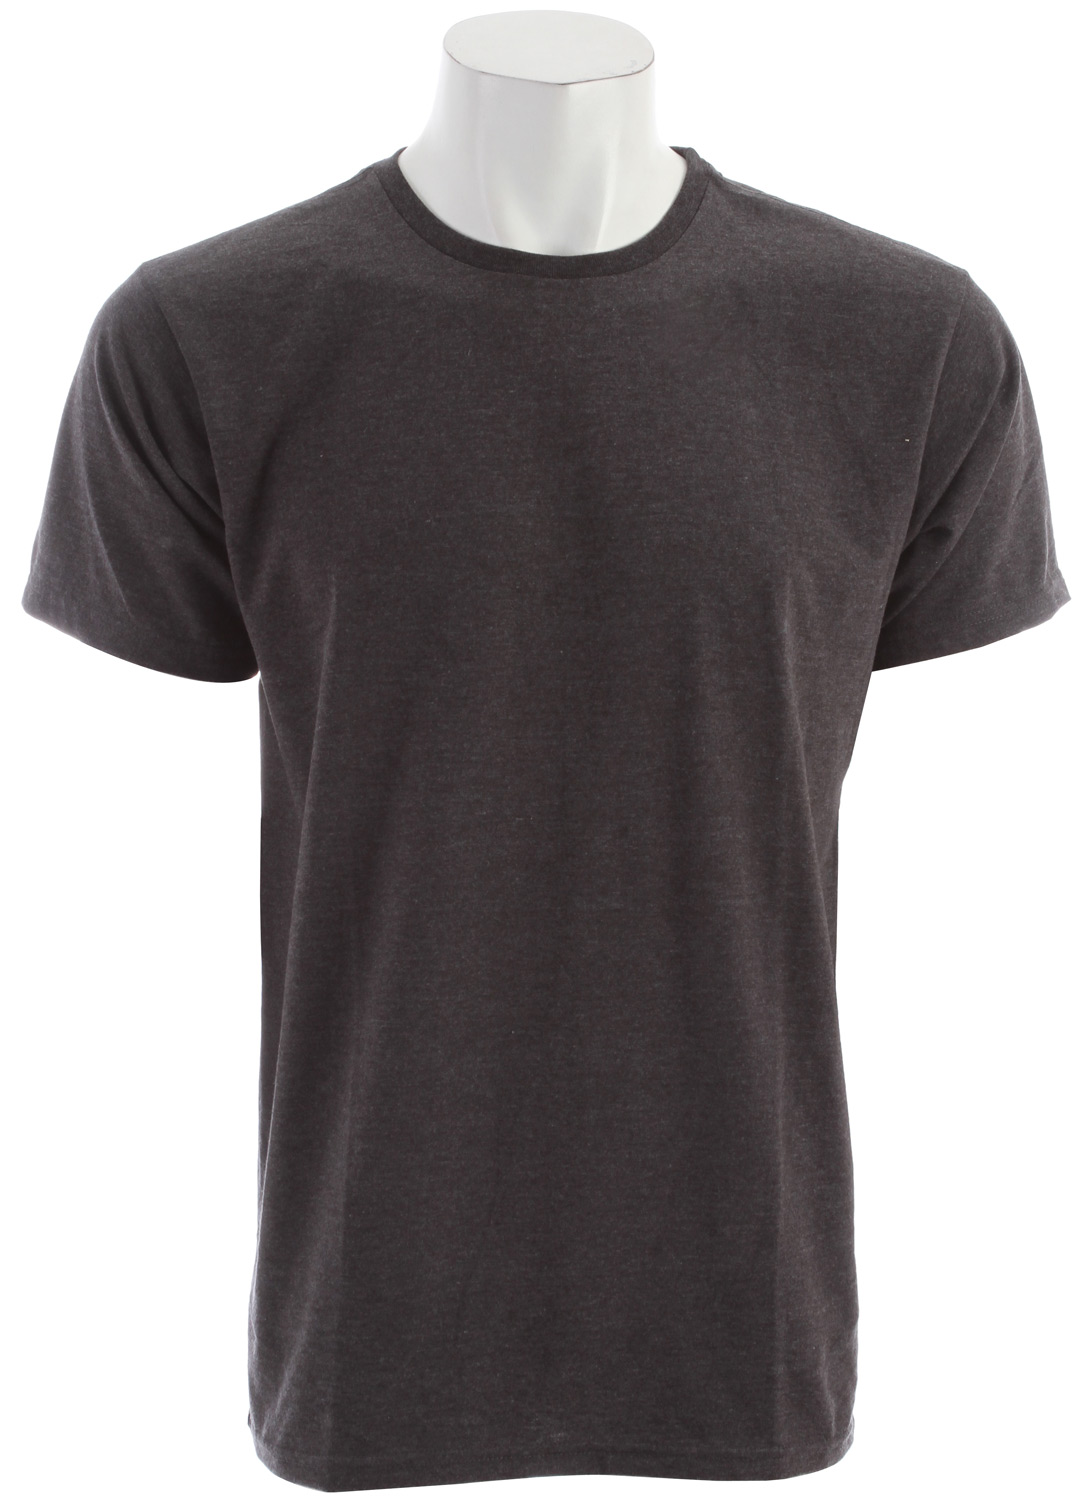 Surf Key Features of the Billabong Essential Crew T-Shirt: Regular fit tee with an essential woven label Sleeve clamp label and PVC-free heat sealed neck label 50% recycled polyester/50% organic cotton - $14.95